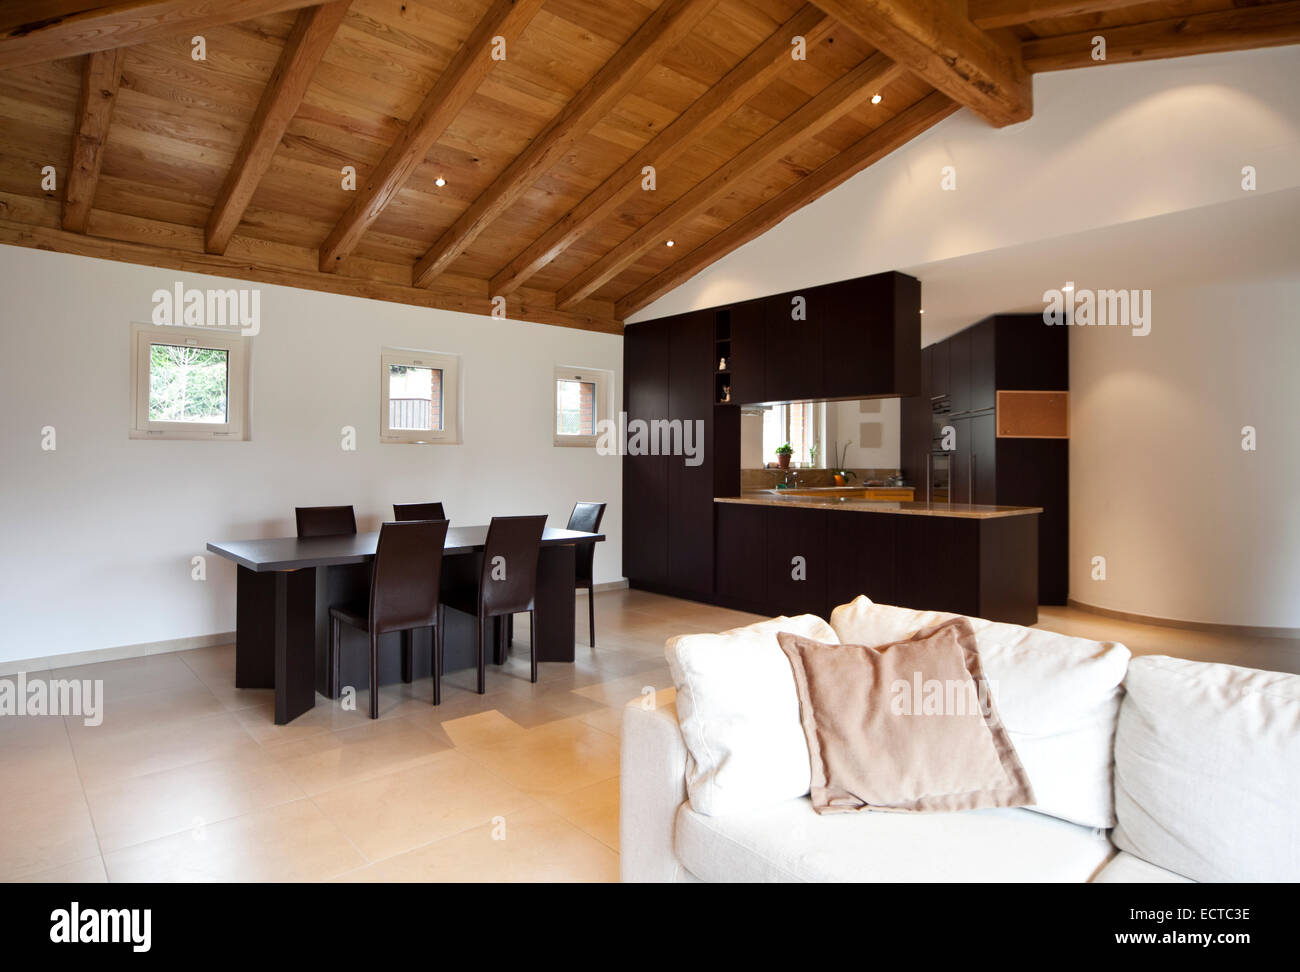 Modern Cozy Apartment Interior Open Space Wooden Roof Stock Photo Alamy